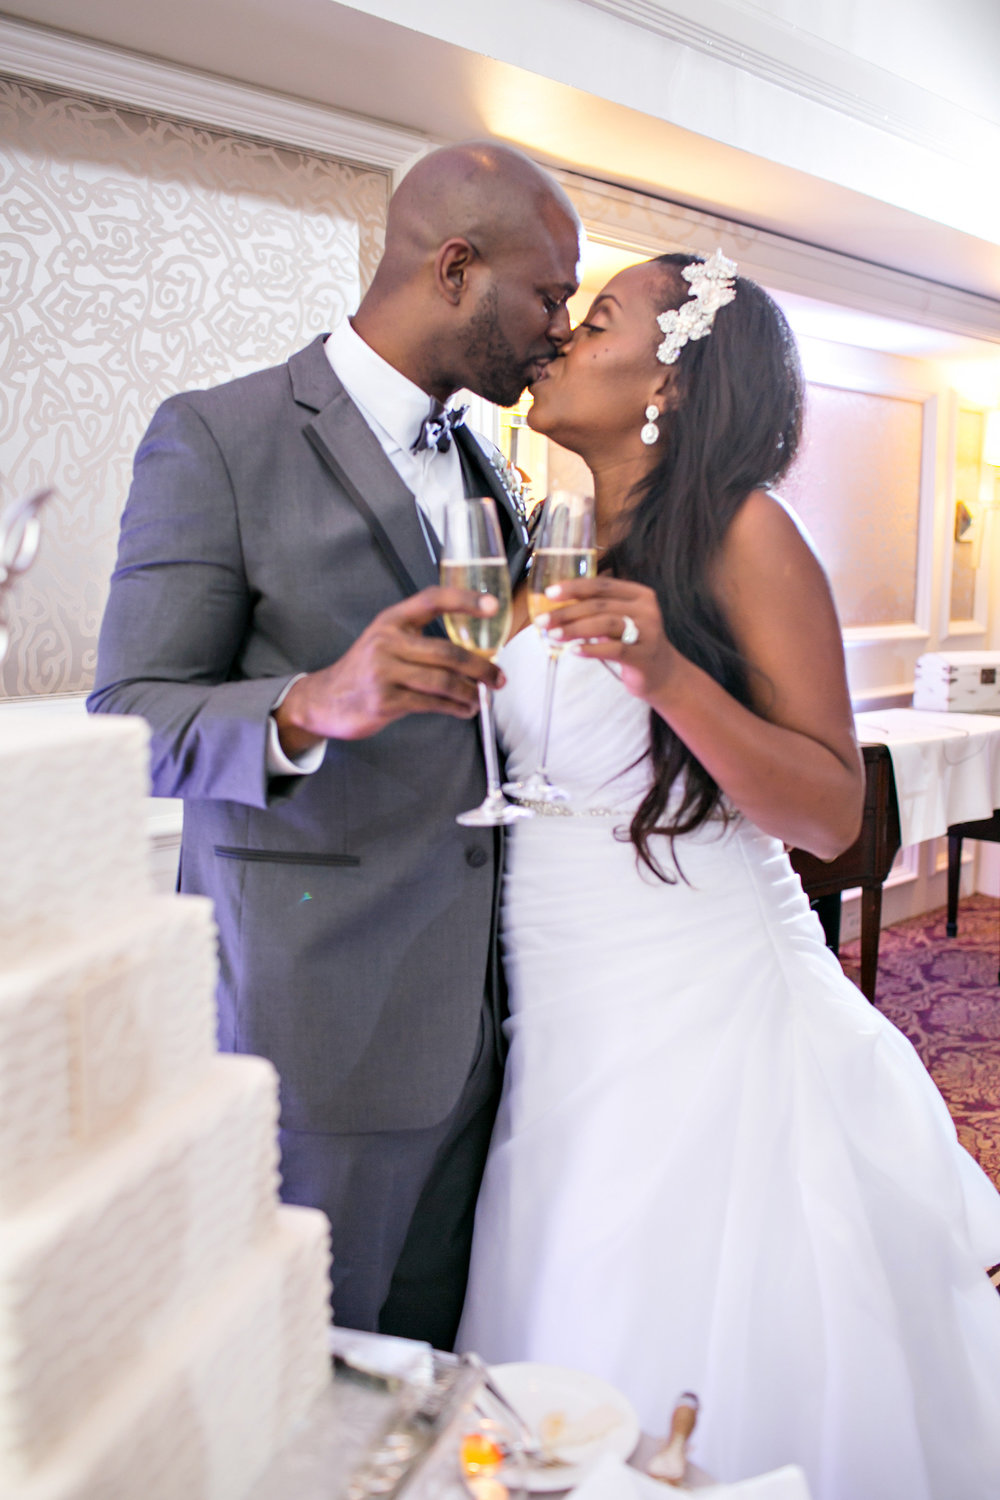 Image from Leslie & Jamaal's Wedding; Courtesy of Michelle Davina Photography